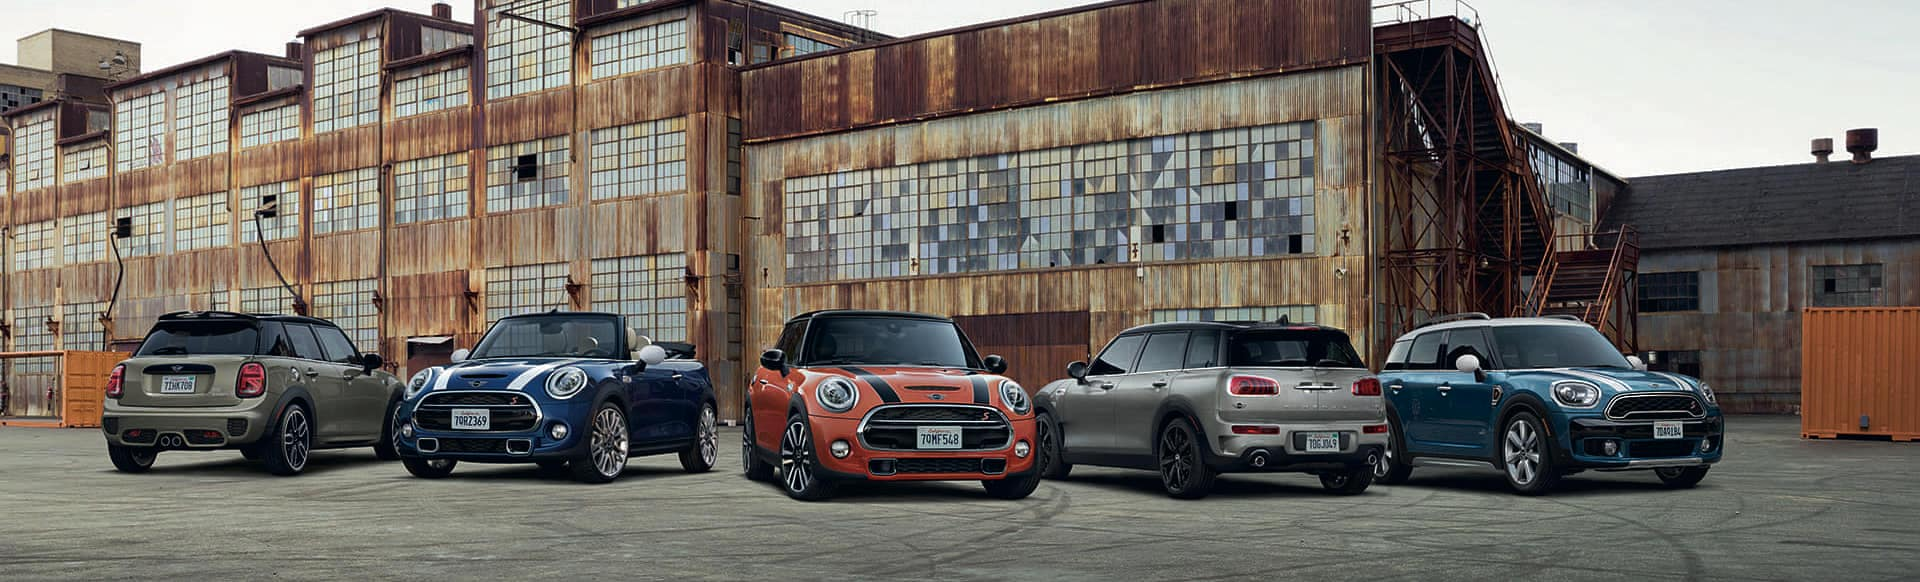 MINI Cooper Sports Car Leasing